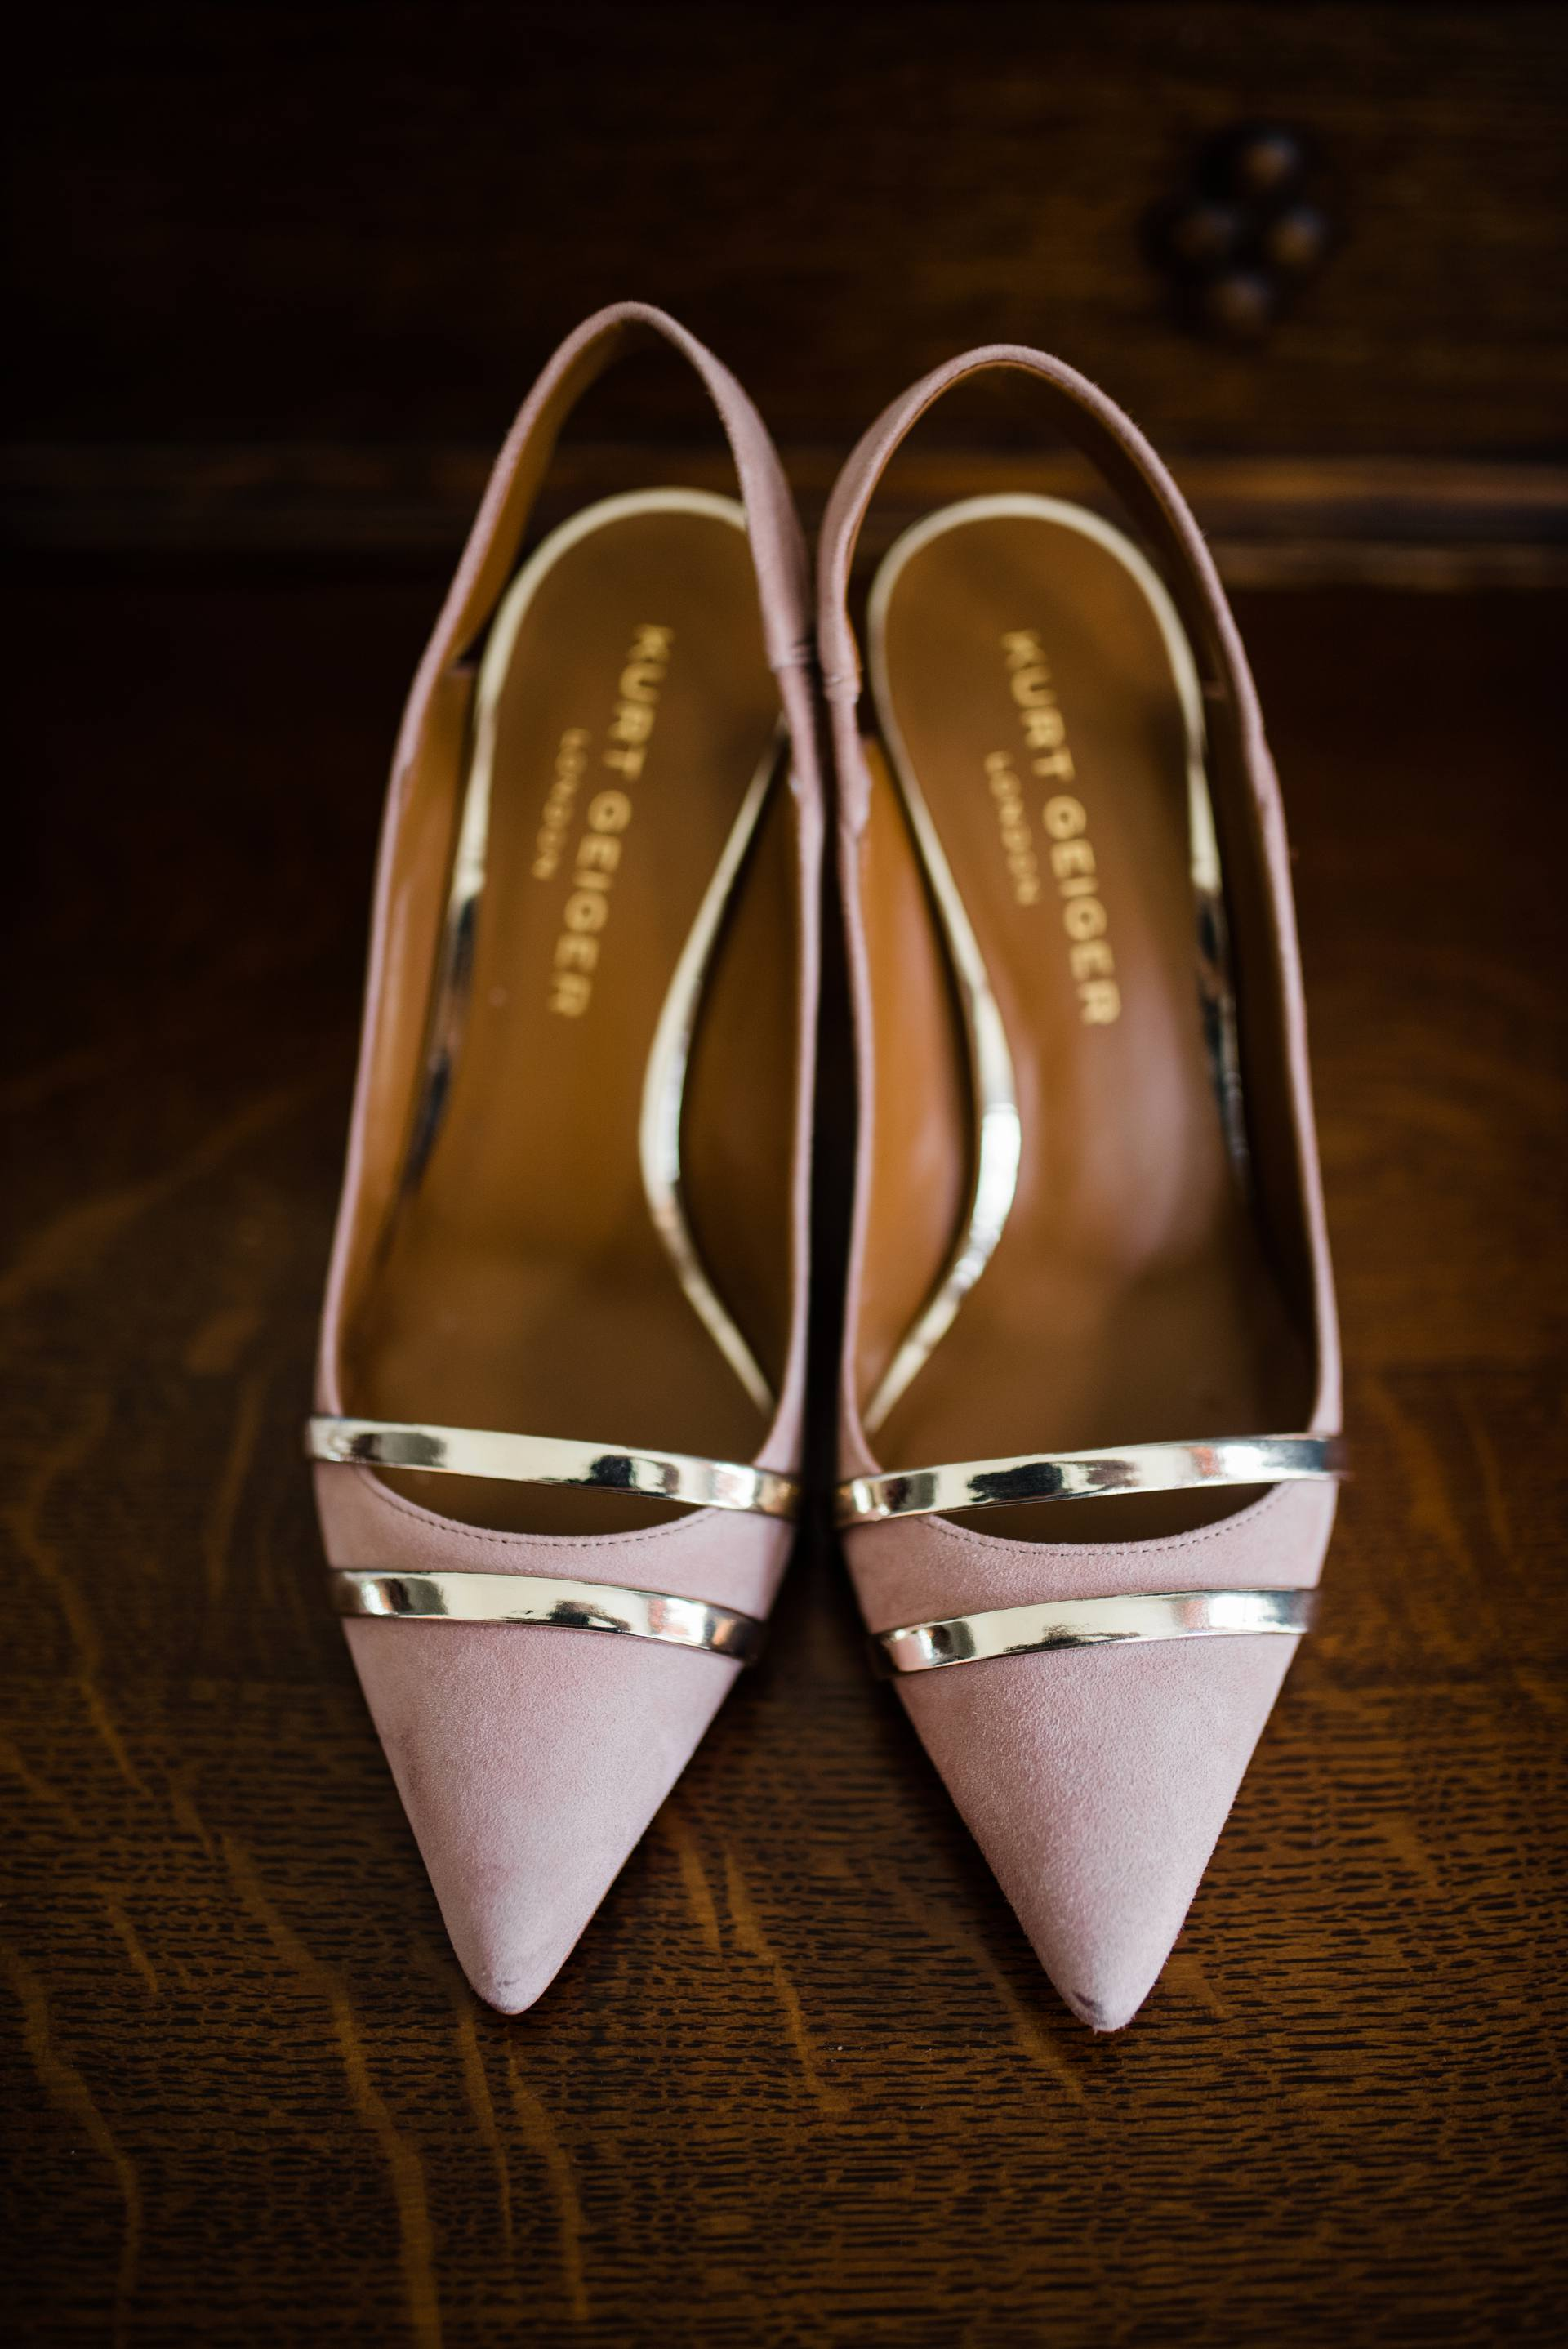 Kurt Geiger blush pink shoes